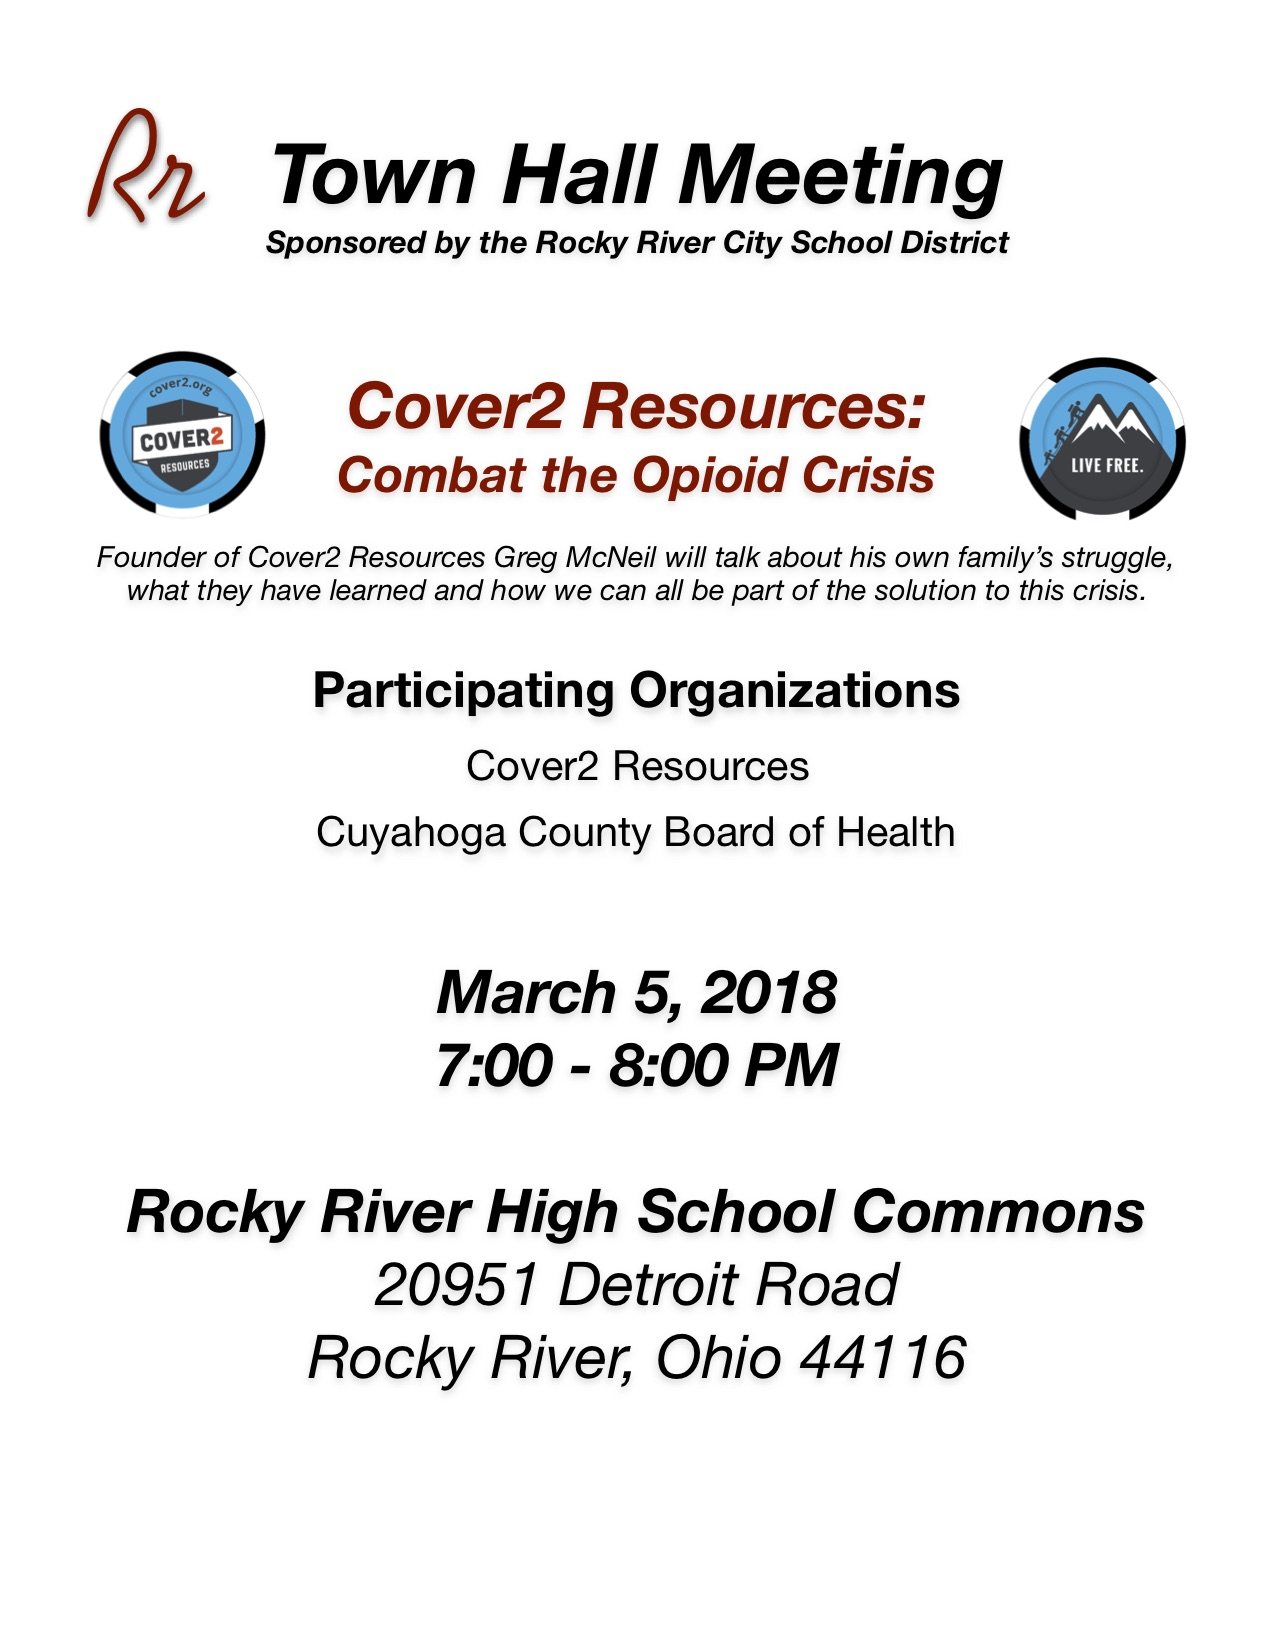 Town Hall Meeting: Cover2 Resources: Combat the Opiod Crisis